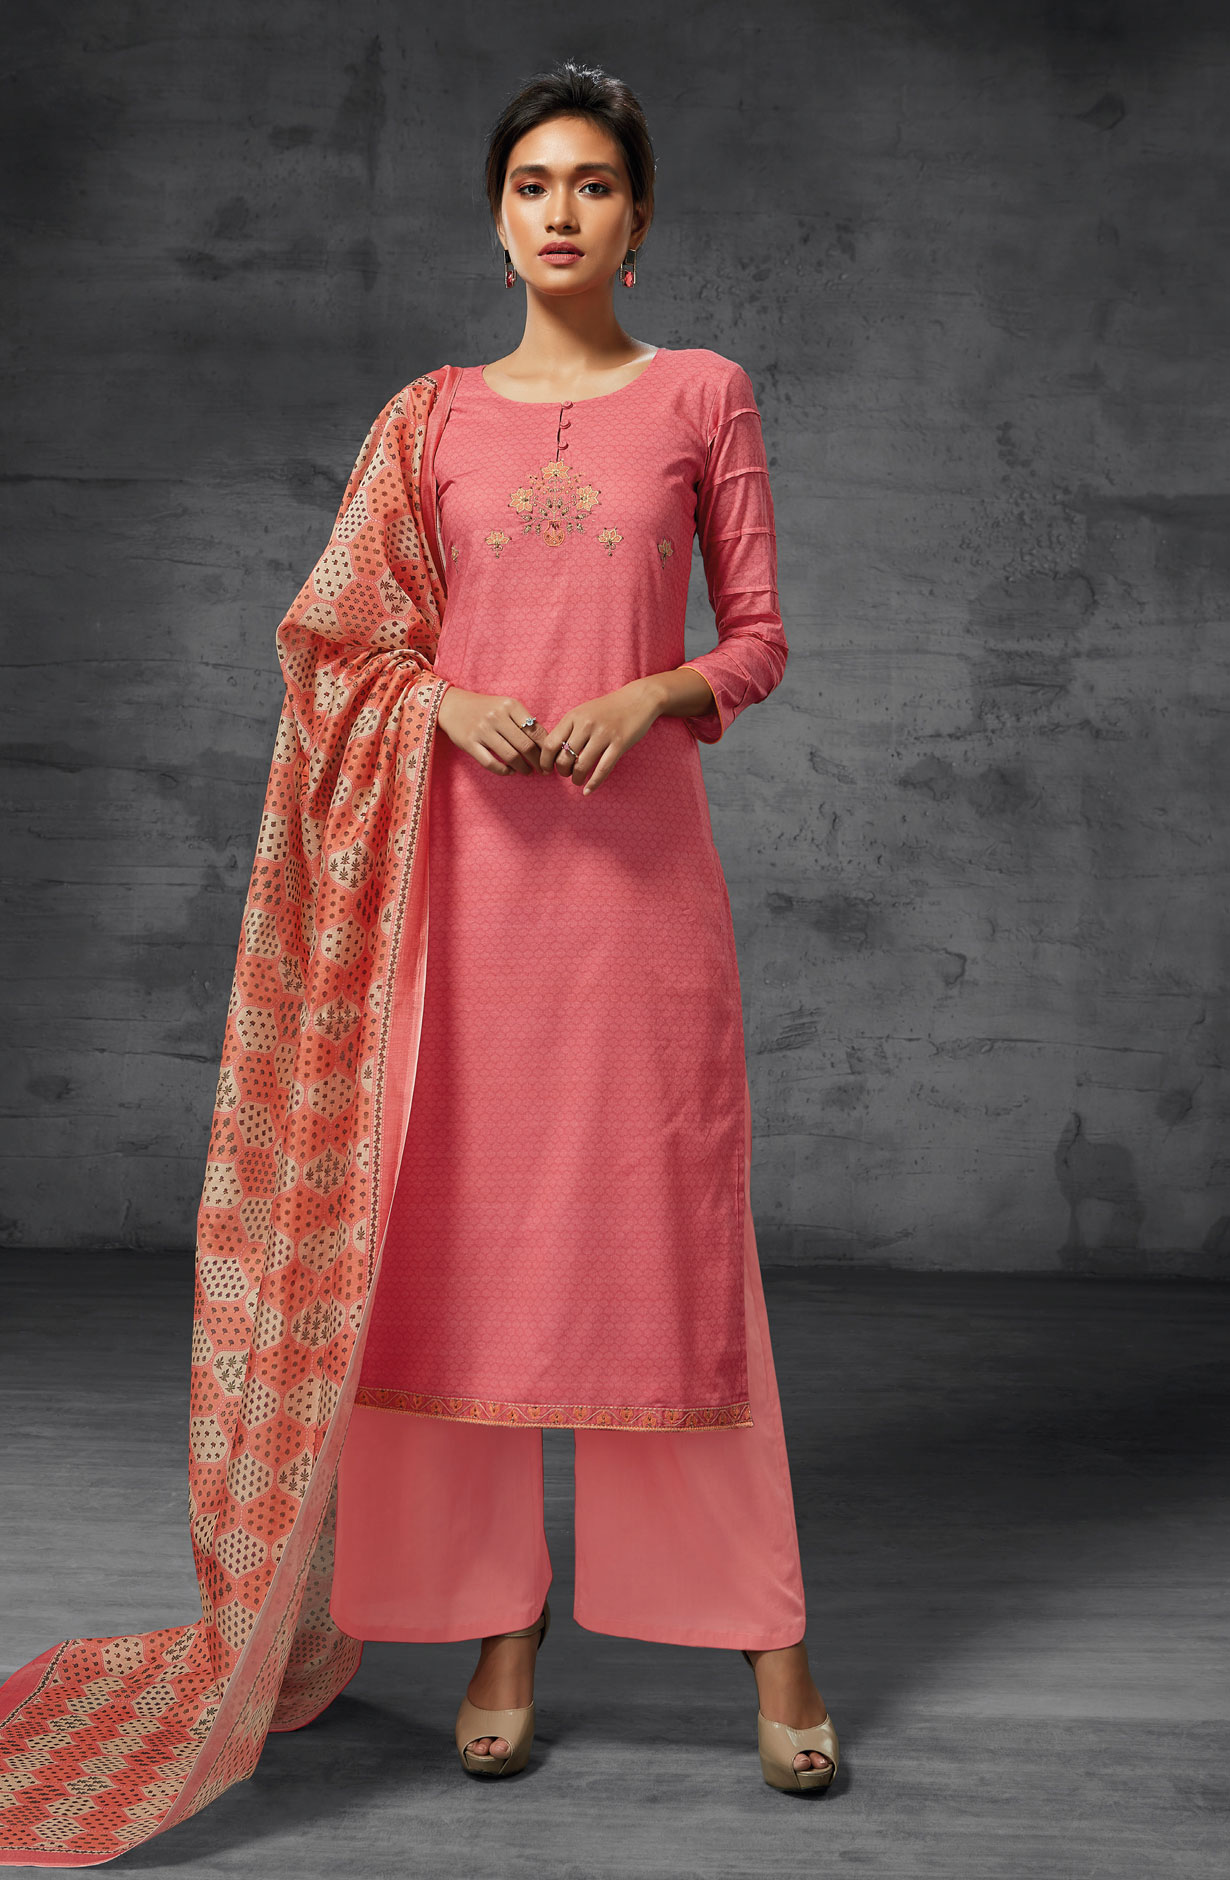 bcfe7475e7 Latest Summer Collection Digital Print Cotton Suit Sets In Pink   AEO6212